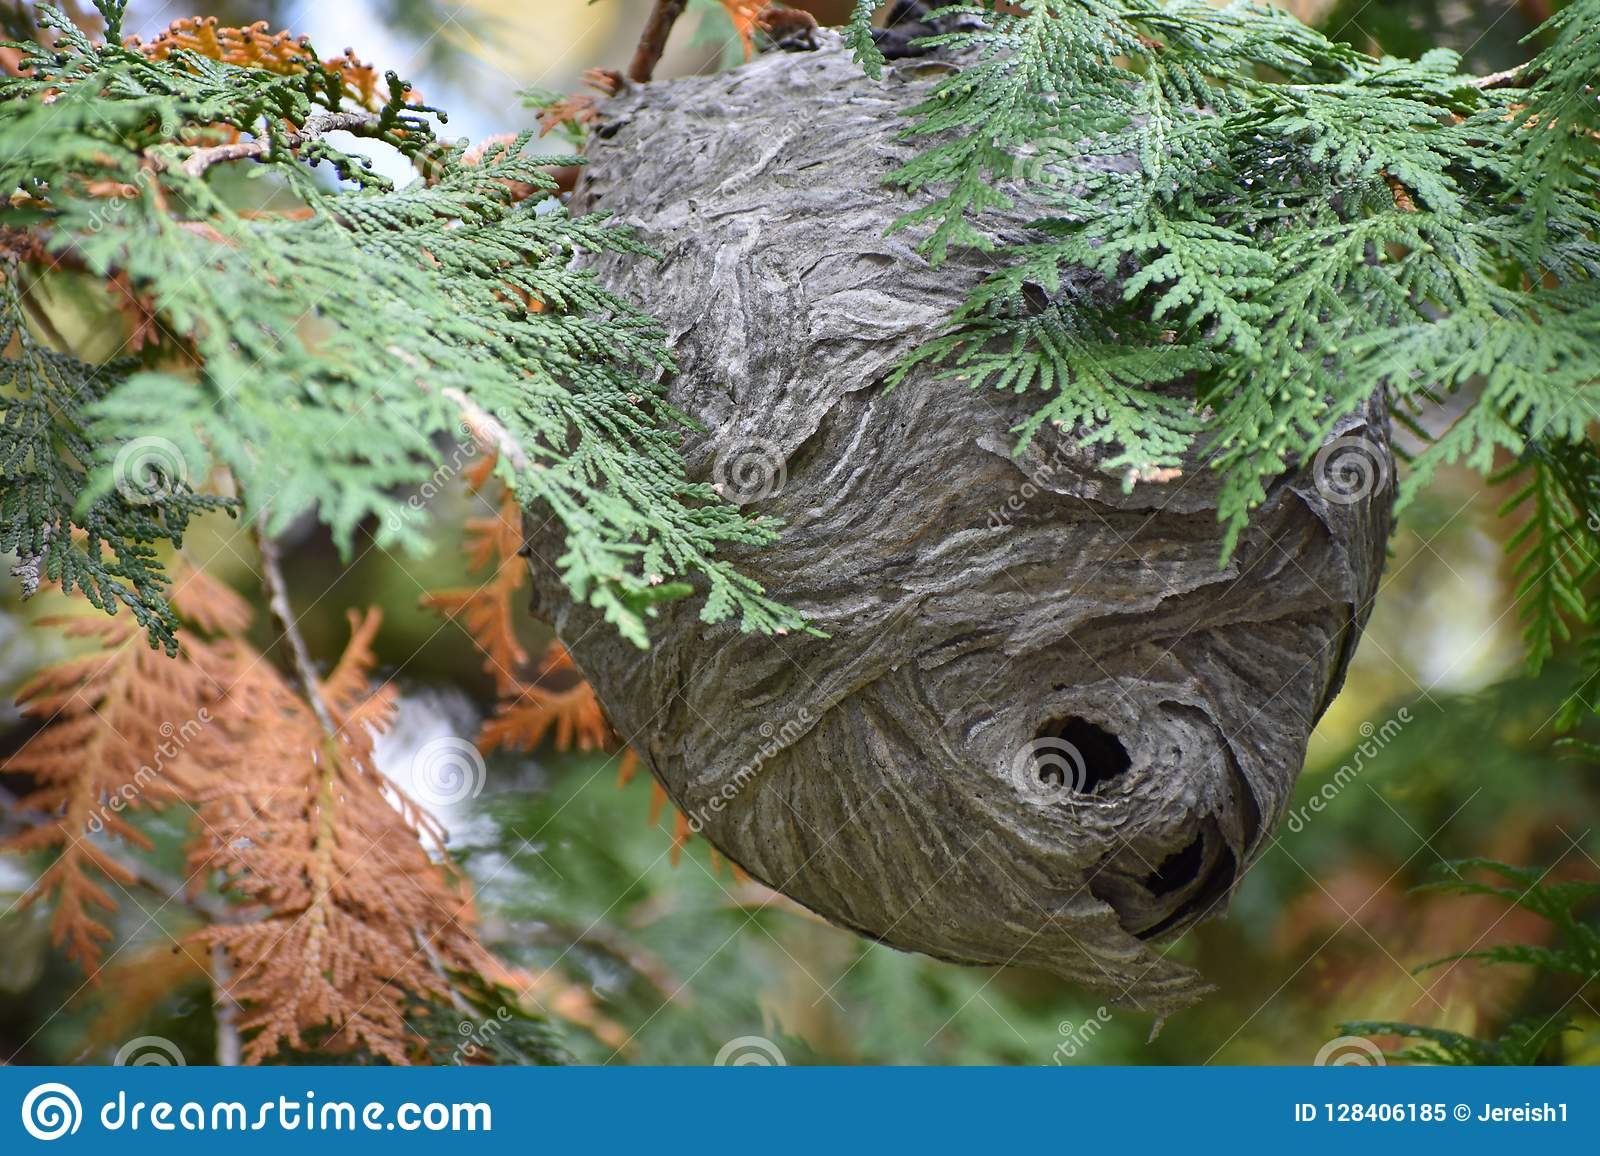 Wasp Nest Hanging on Tree Branch